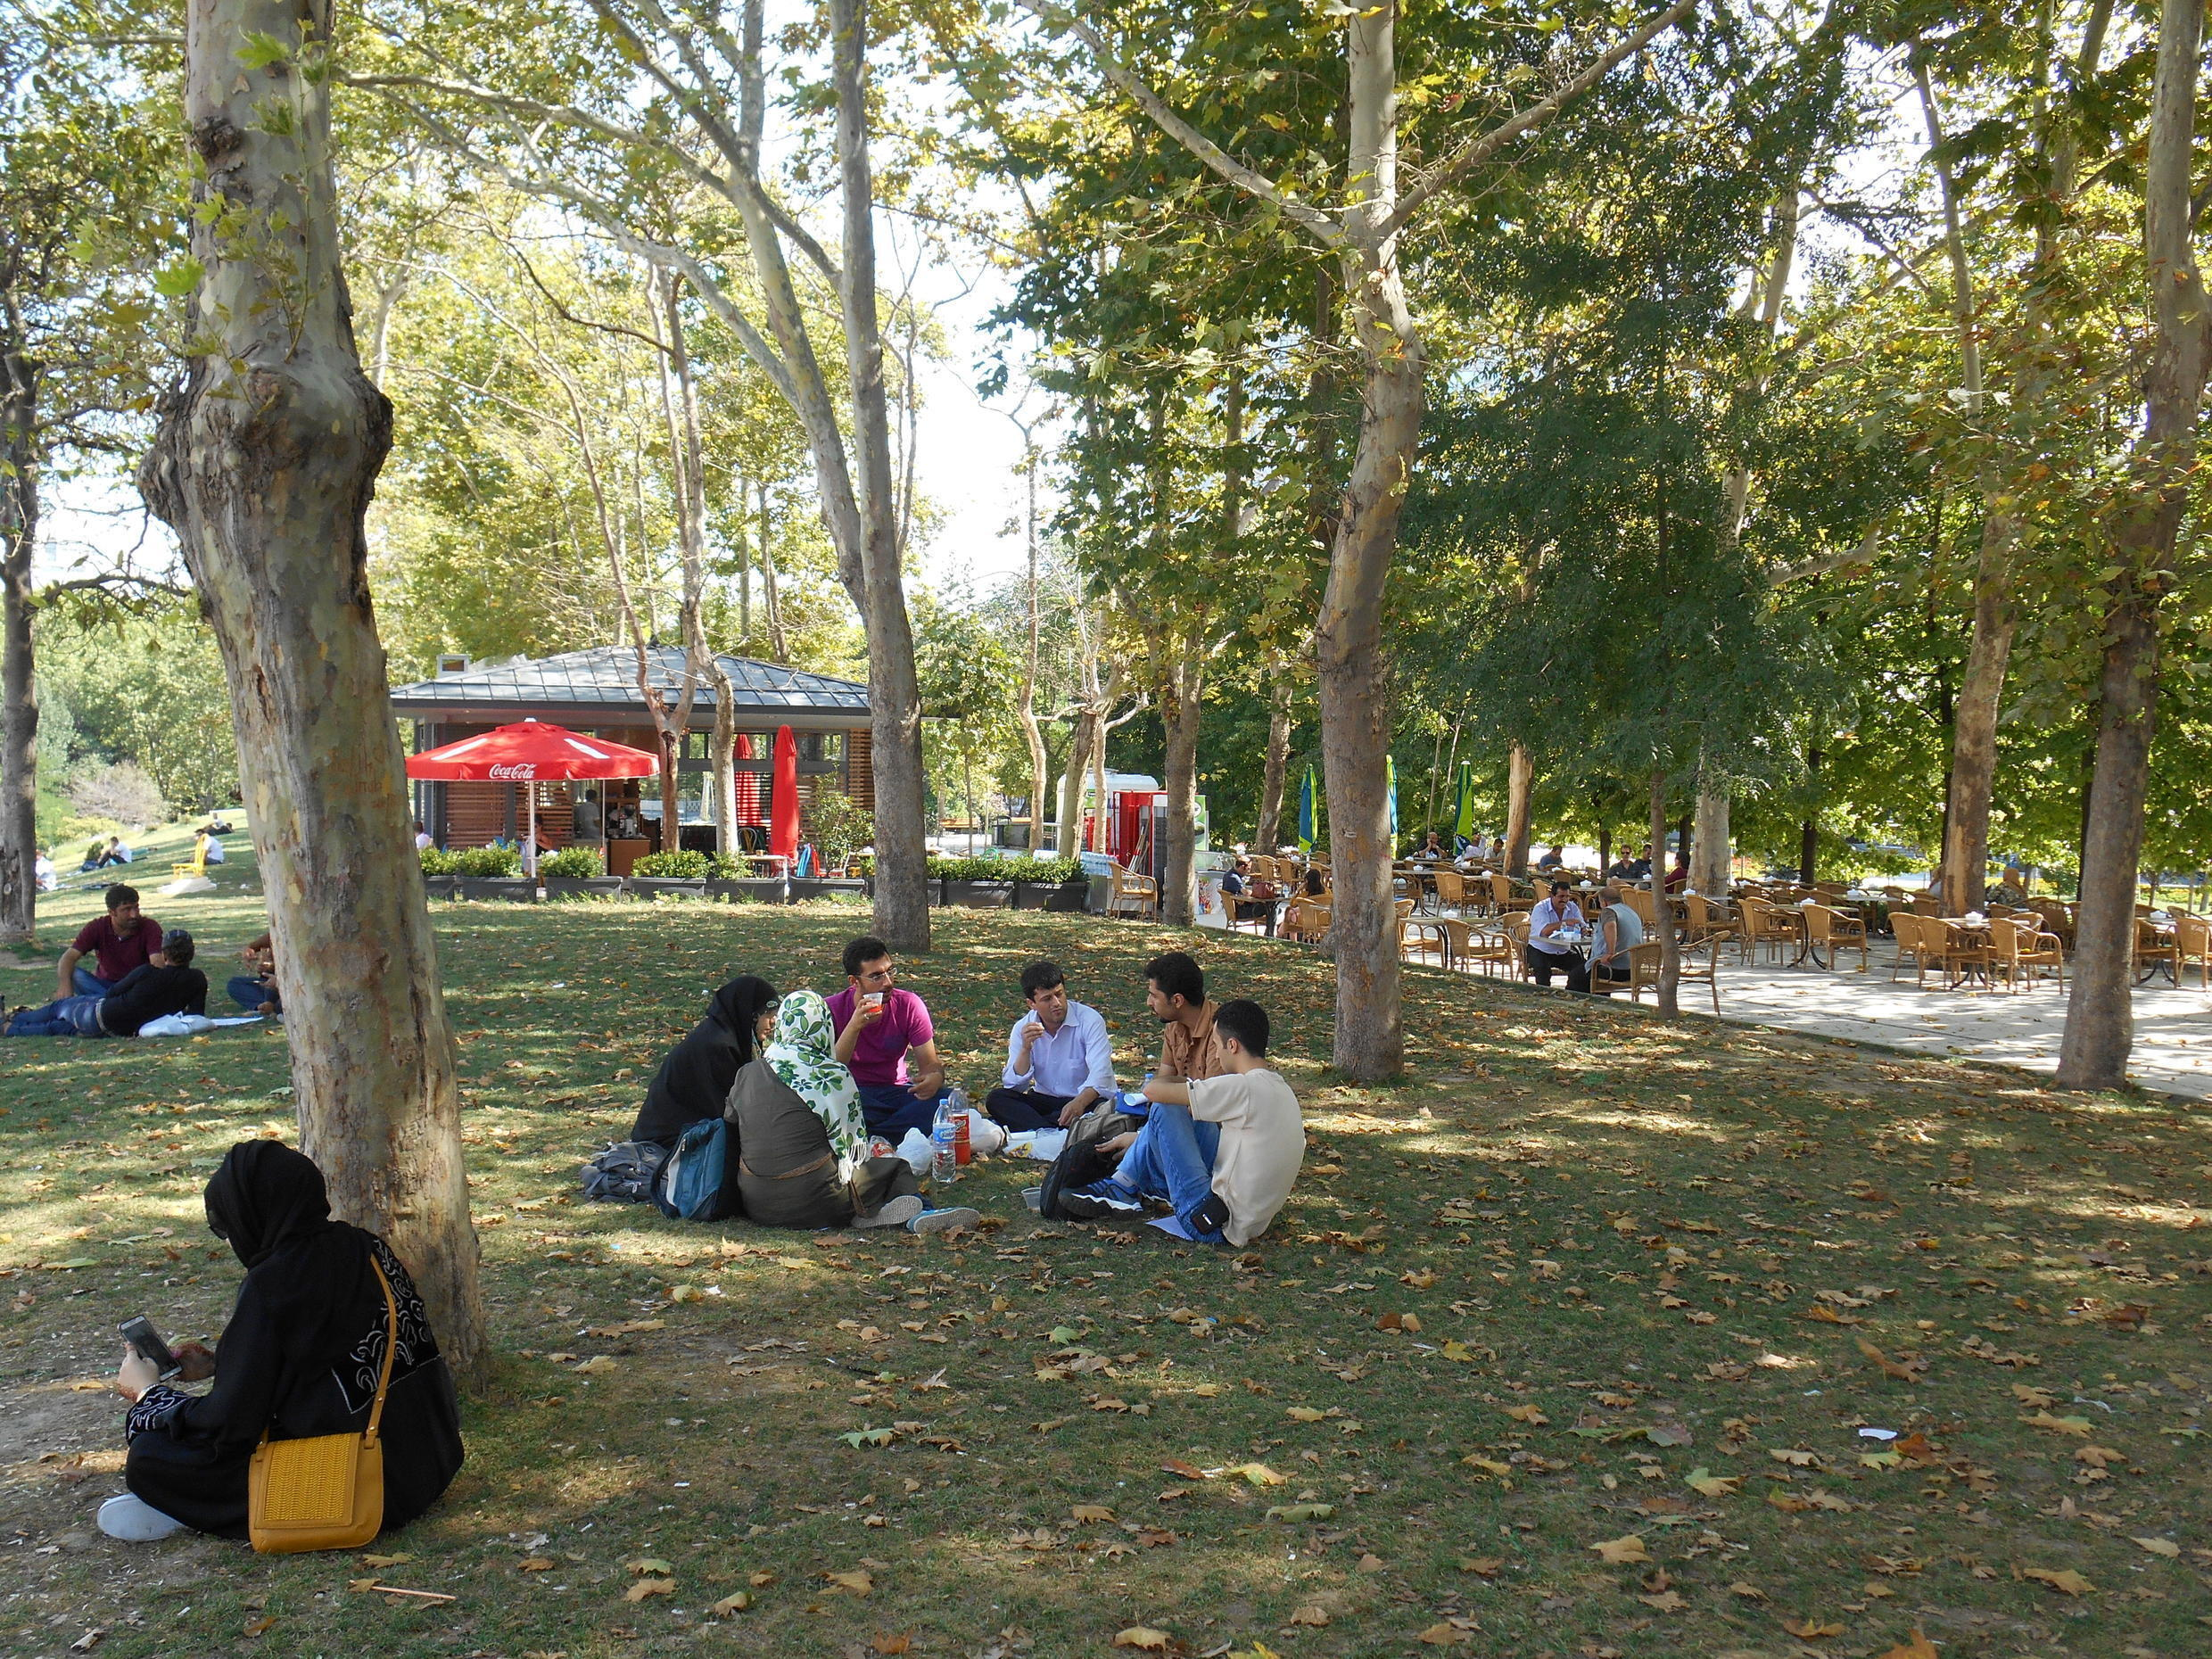 Gezi Park a year after the protests against its redevelopment